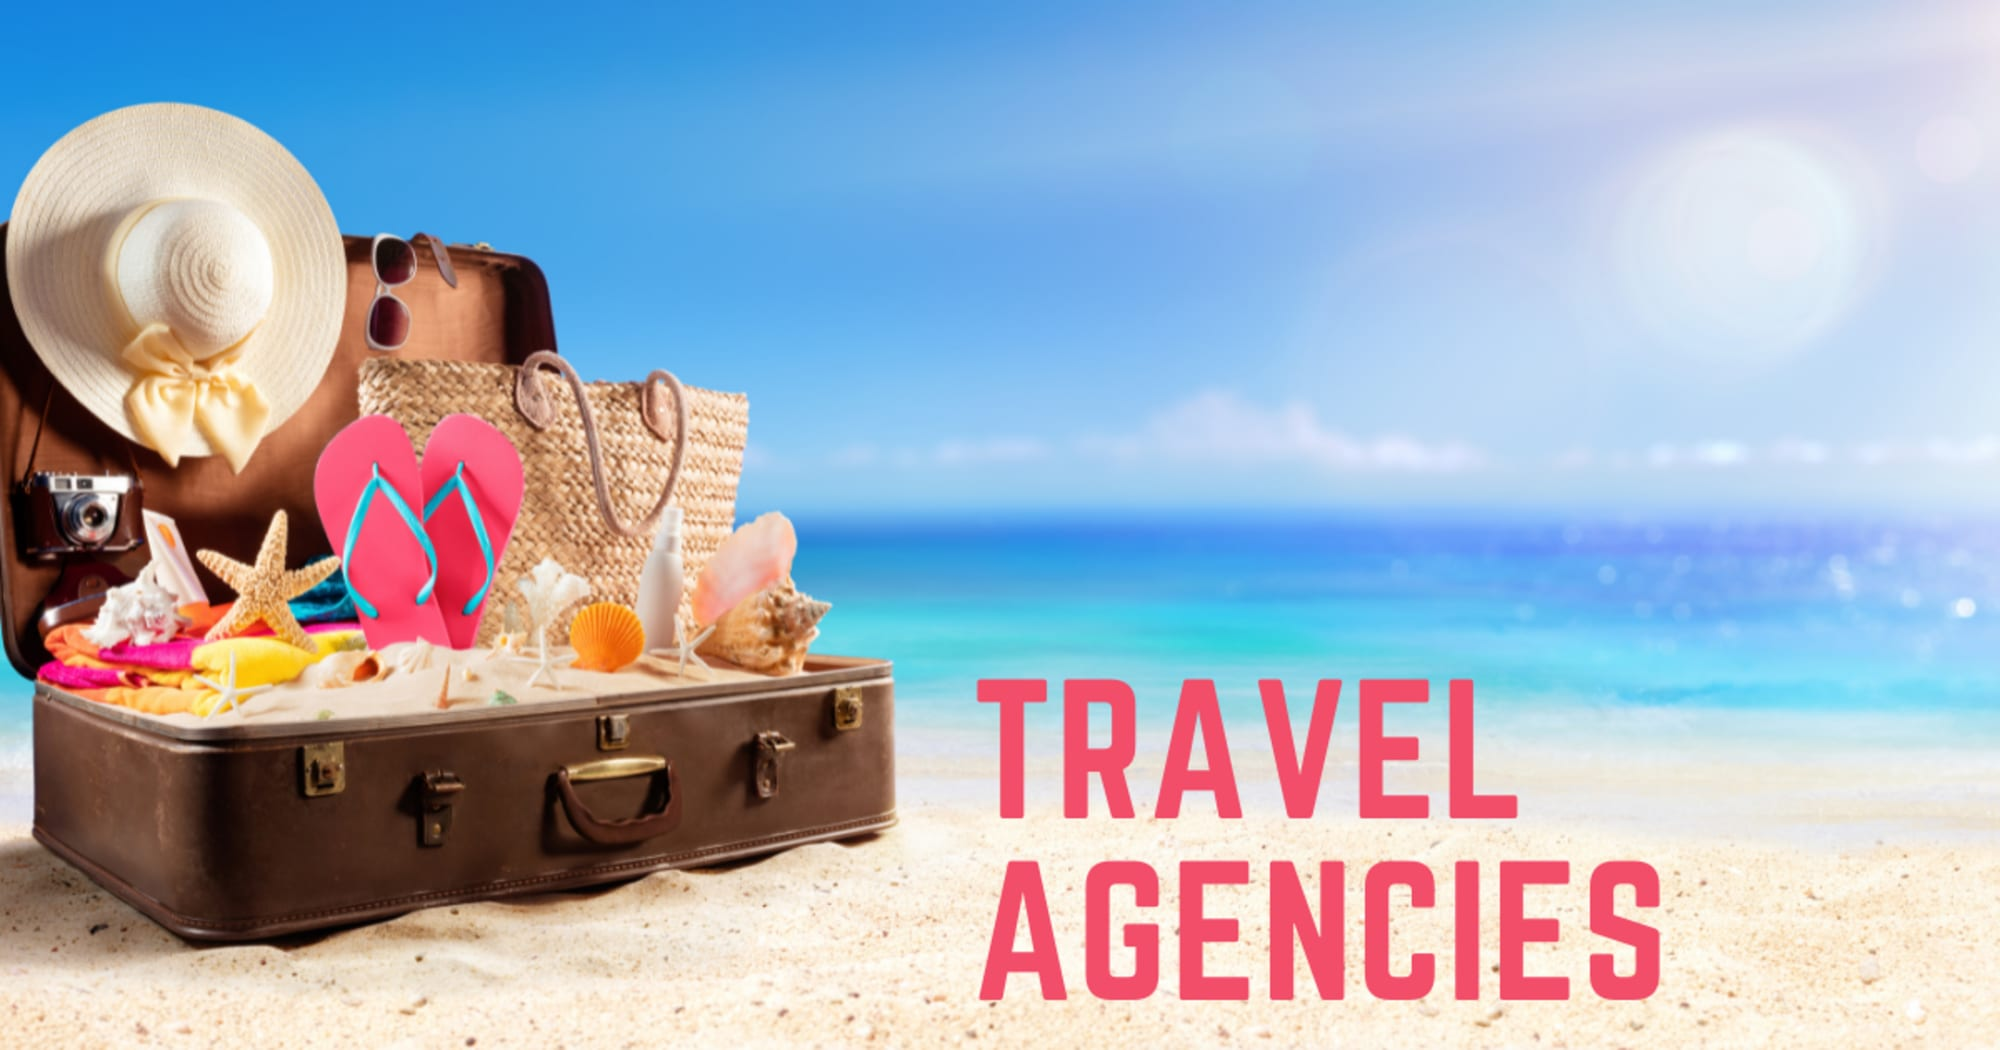 PH Tour operators expressed hopes for tourism revival